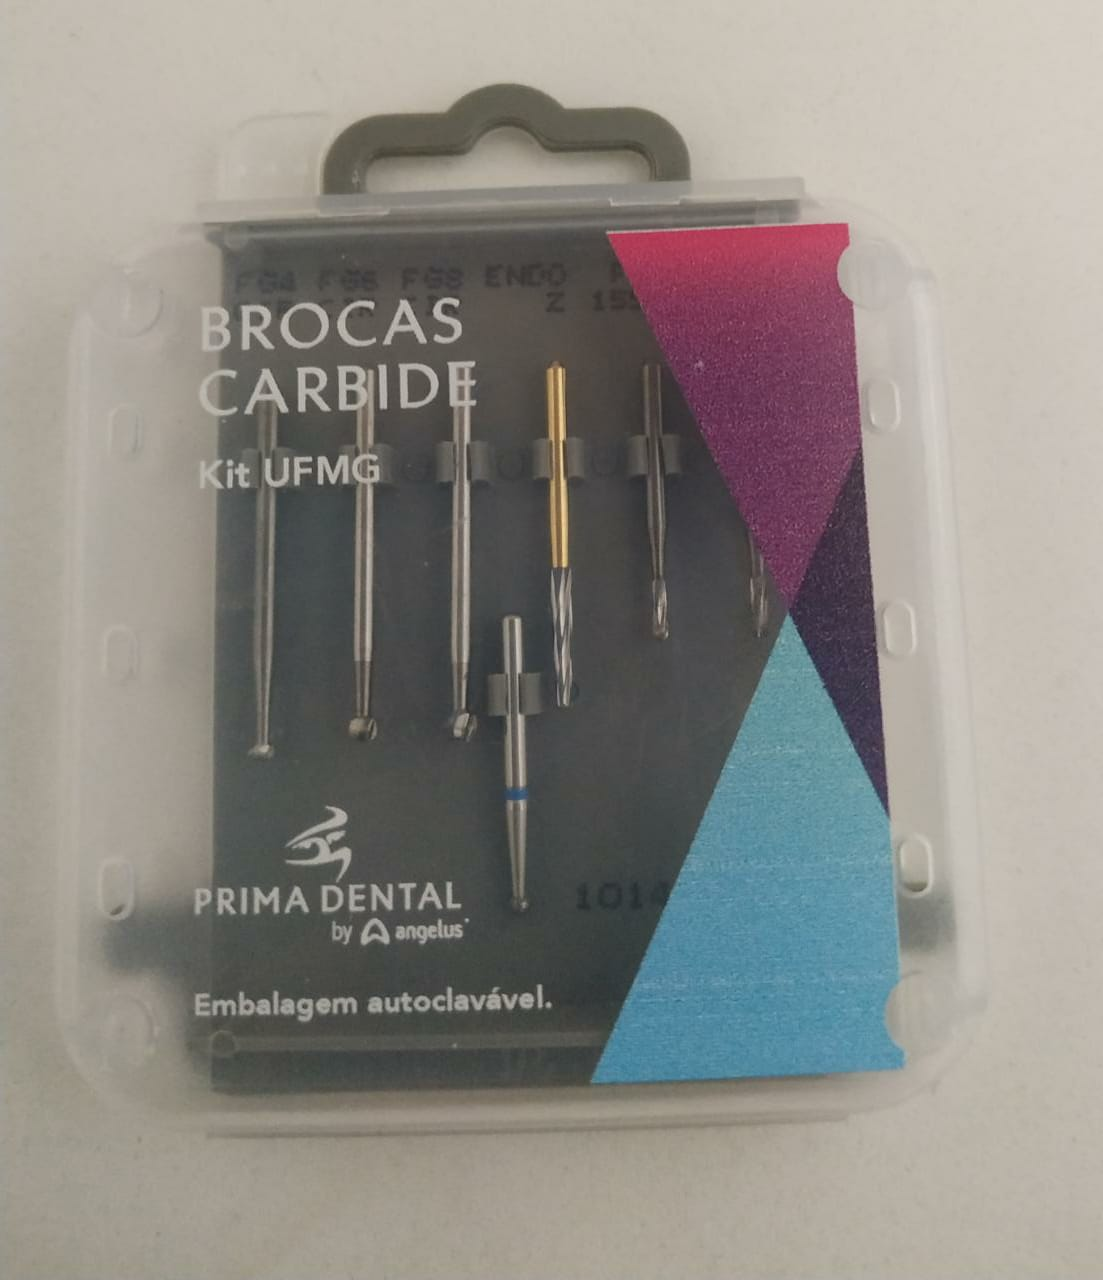 KIT BROCAS UFMG - PRIMA DENTAL ANGELUS